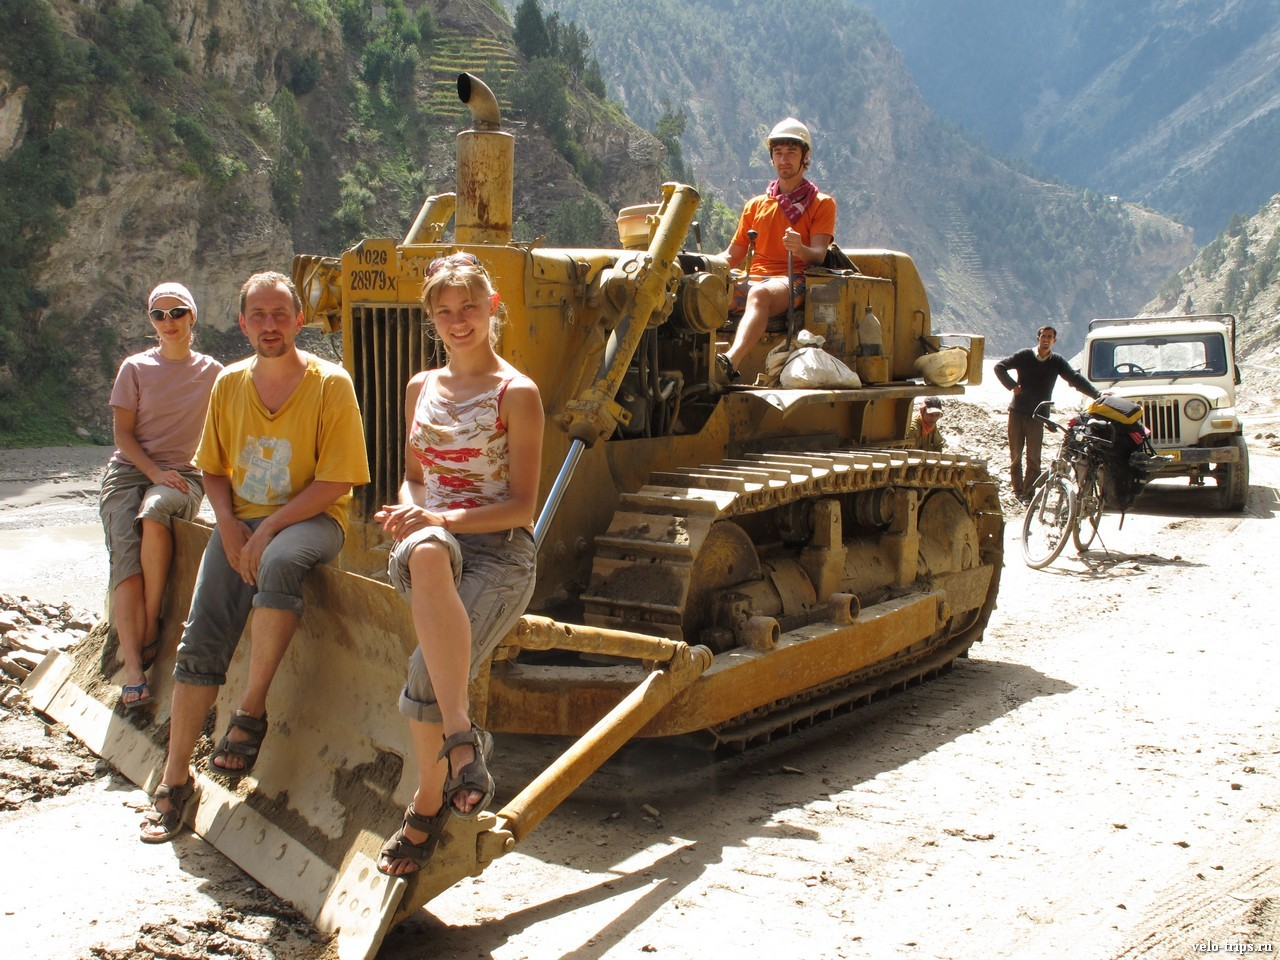 Road repair with excavator on the road along Sutlej, Himalaya